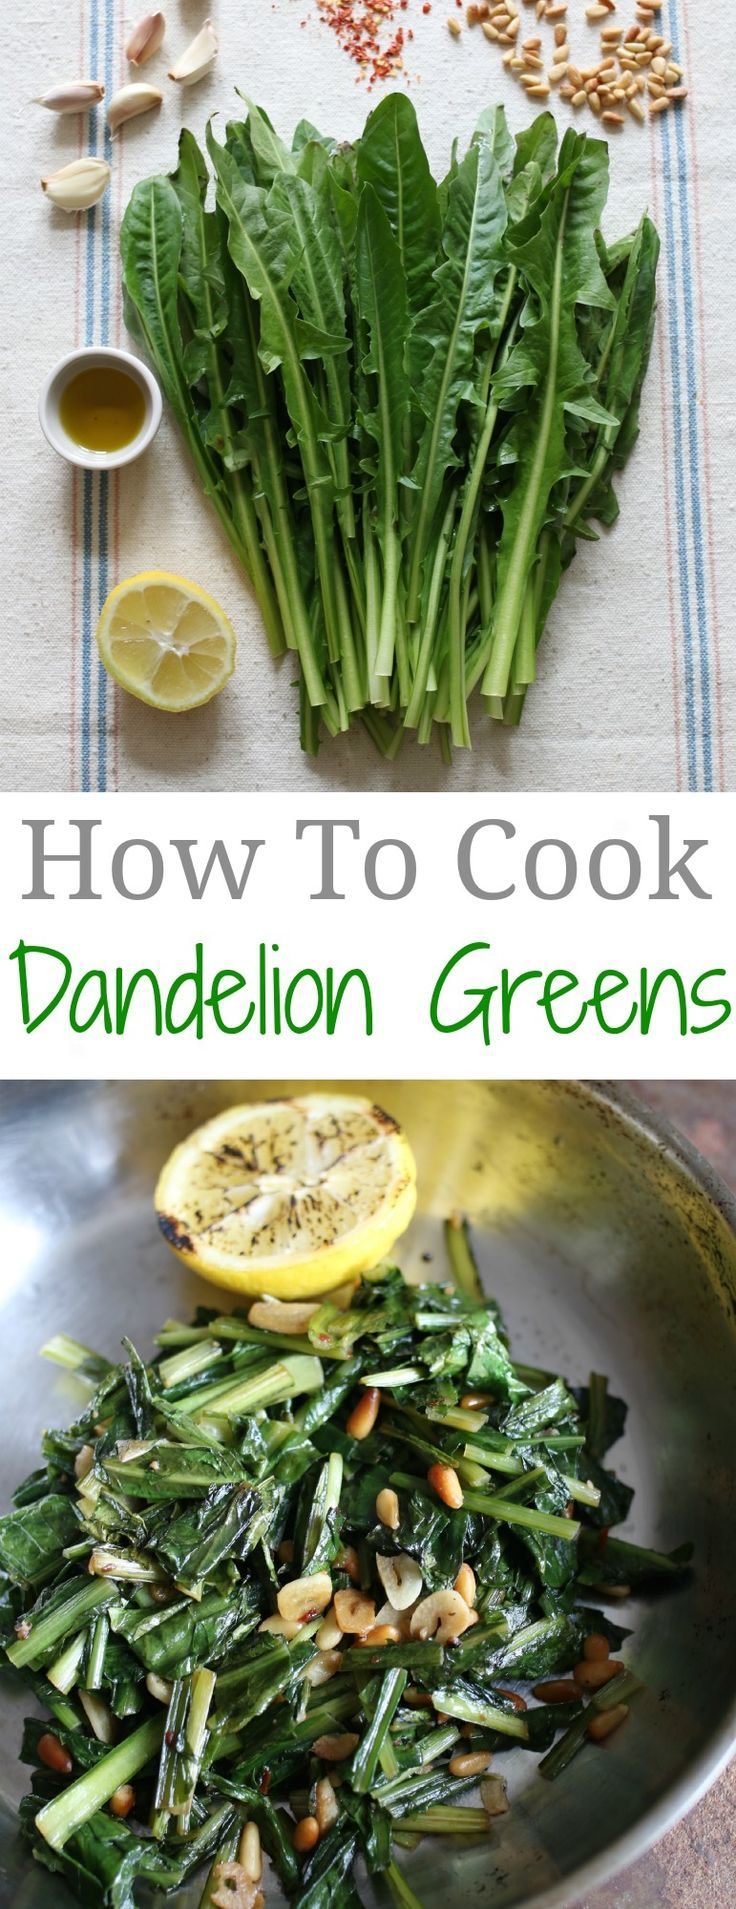 How to Cook Dandelion Greens #forage #wild #recipe